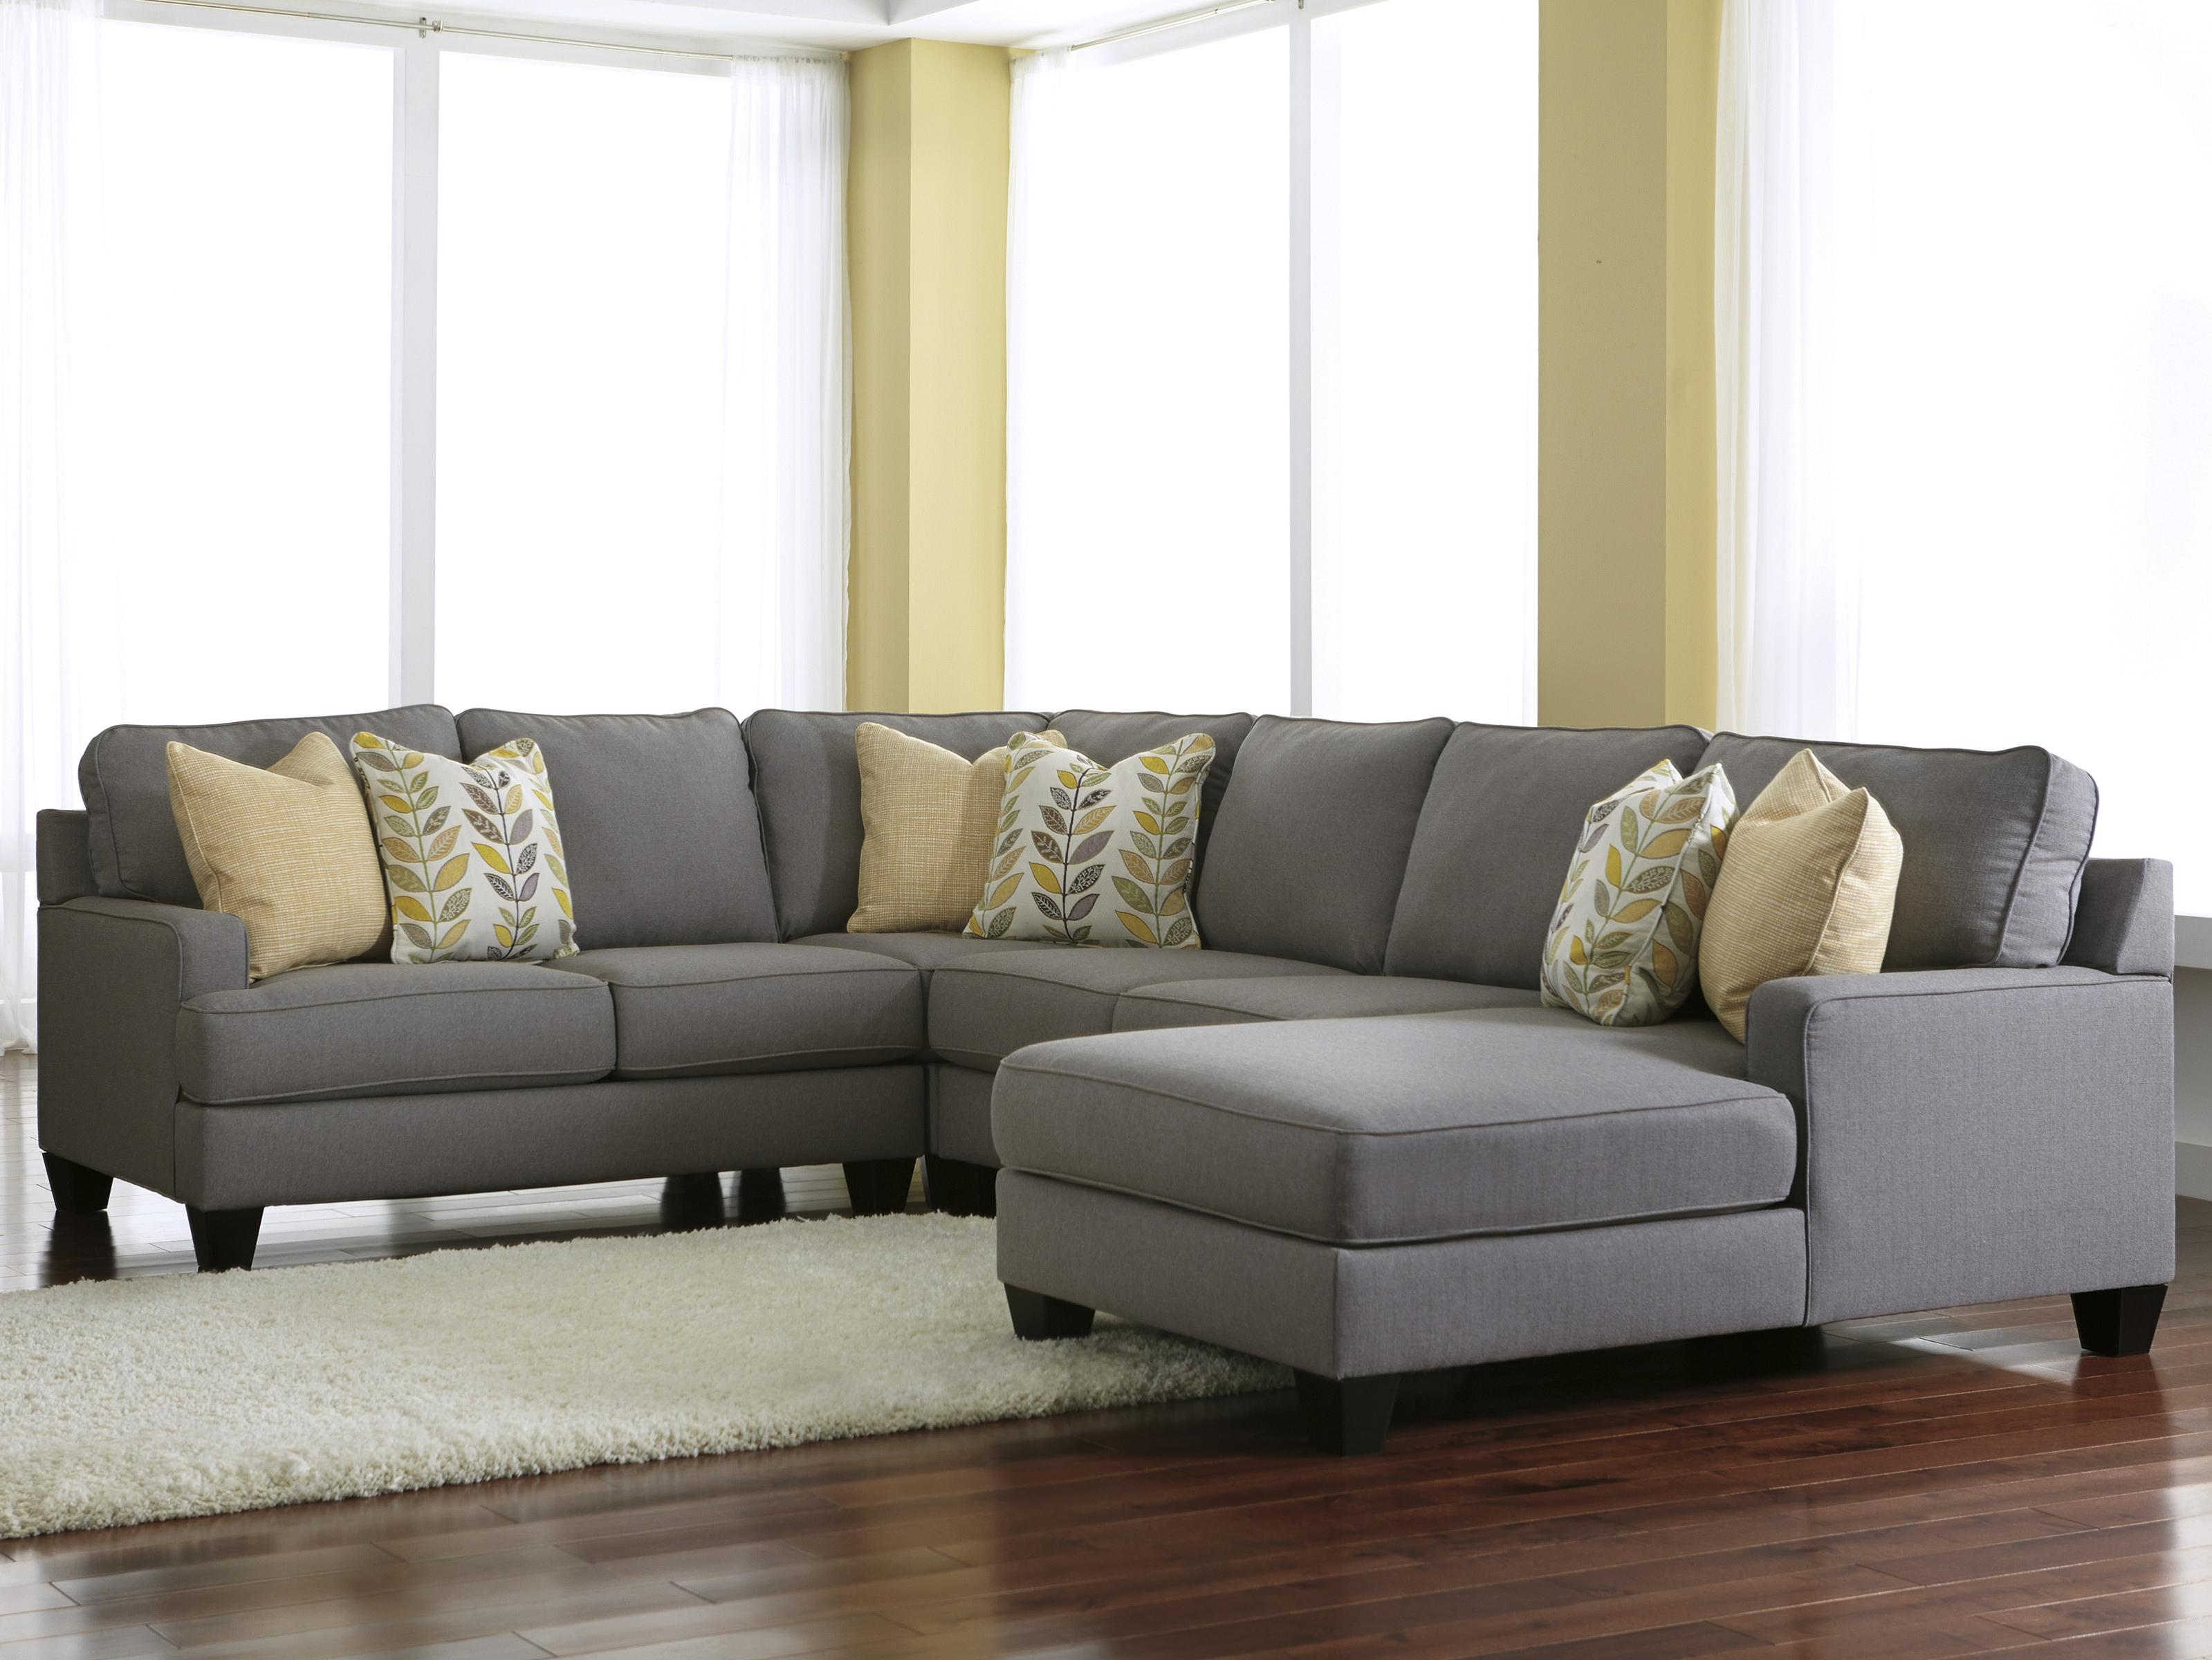 Signature Design By Ashley Chamberly   Alloy 4 Piece Sectional Sofa With  Right Chaise